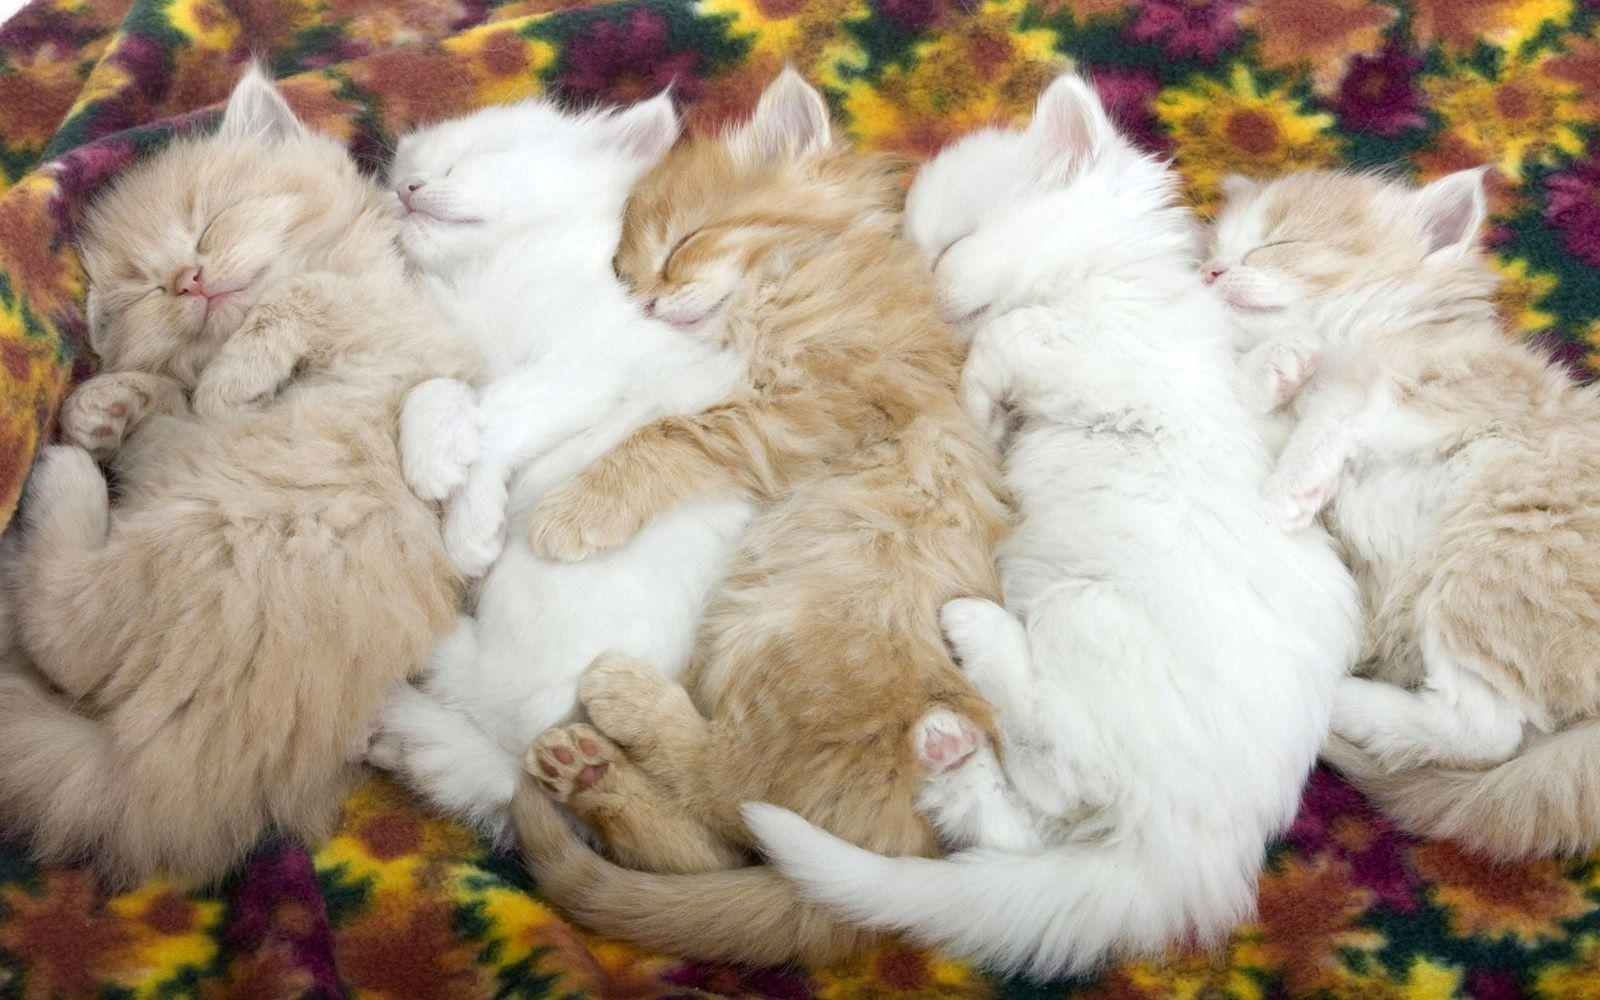 Cute Sleeping Kittens Wallpaper